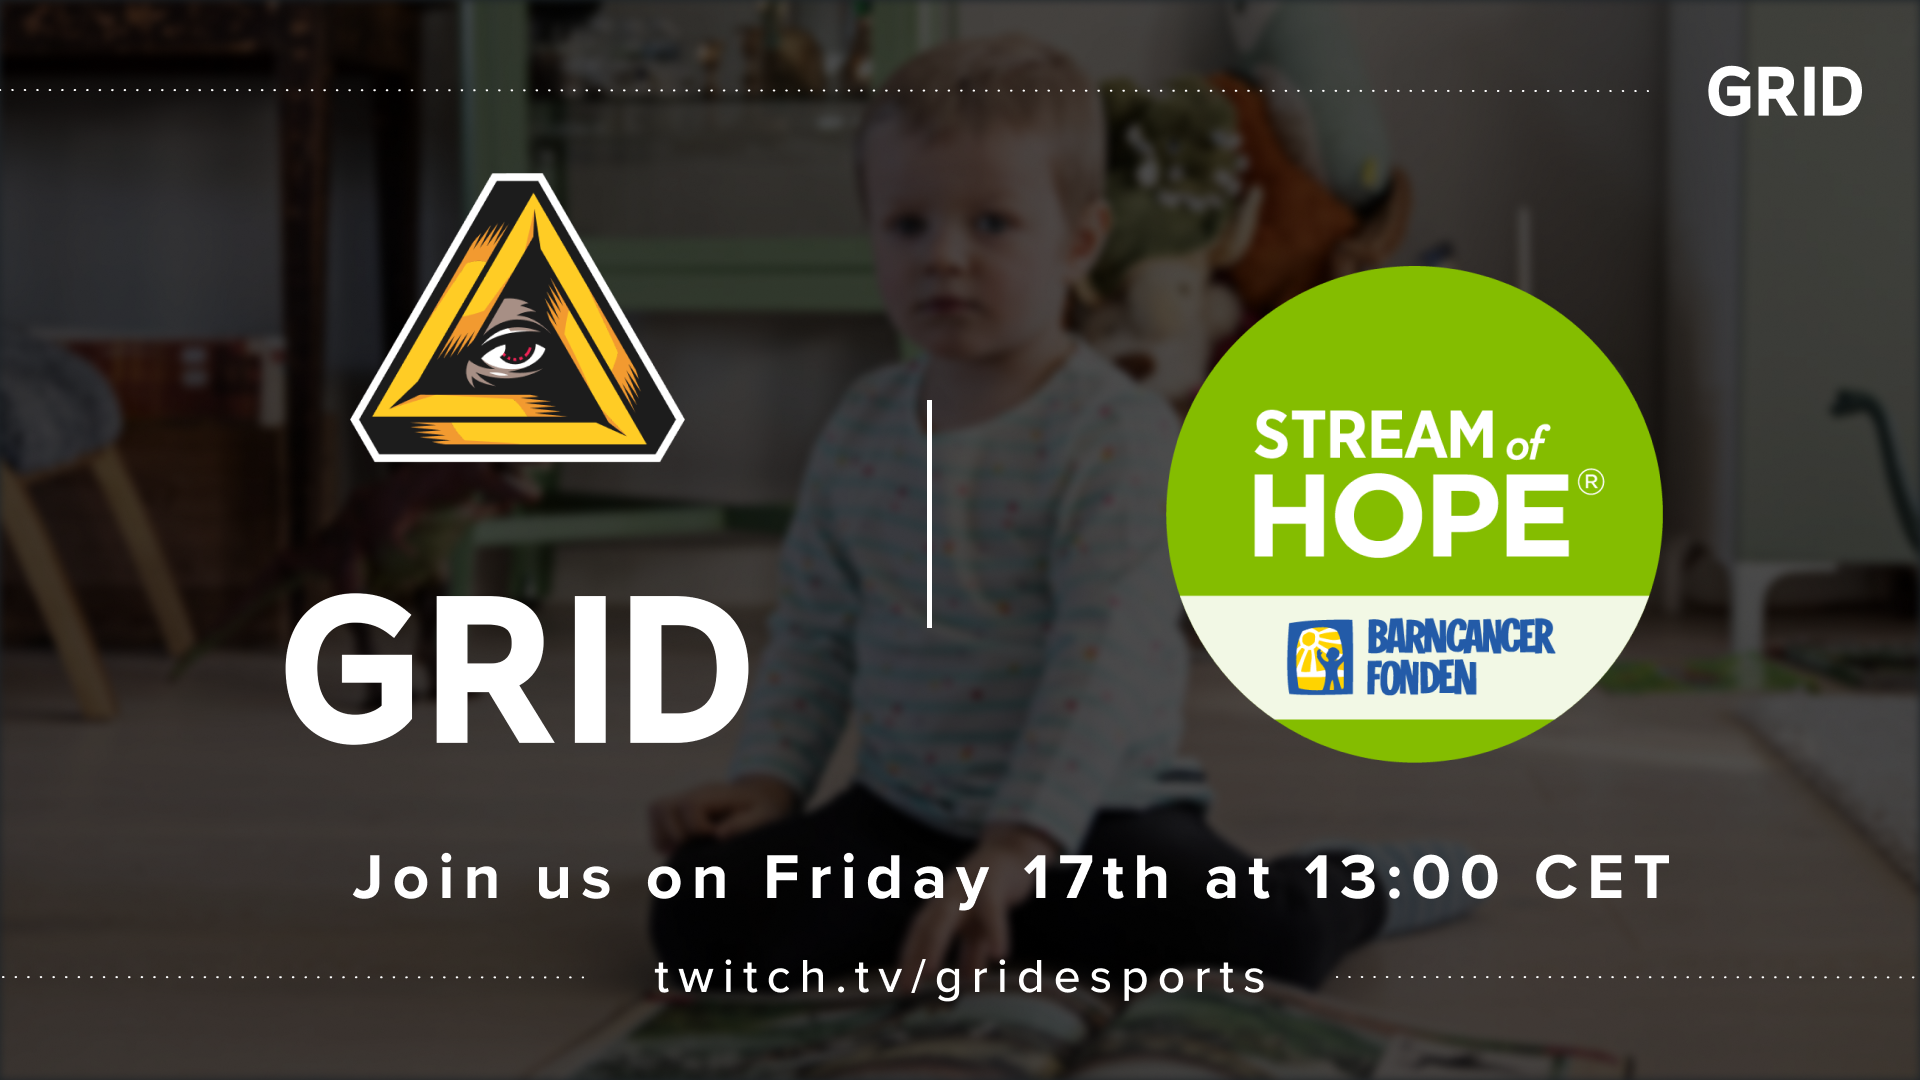 GRID GODSENT Charity Showmatch